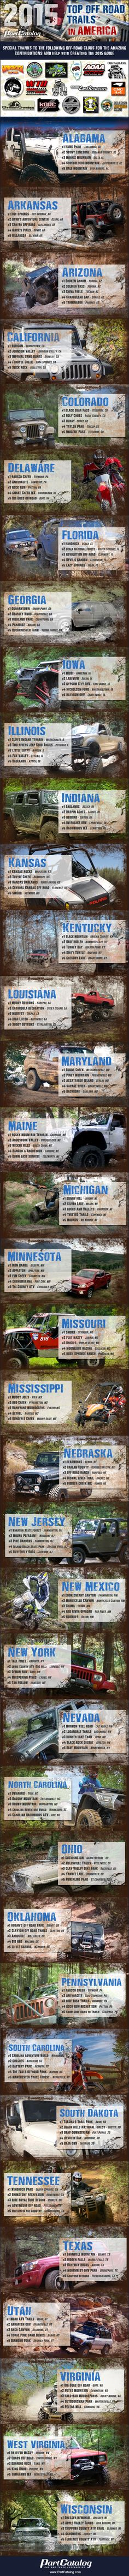 2015 Top Off Road Trails & Parks in America